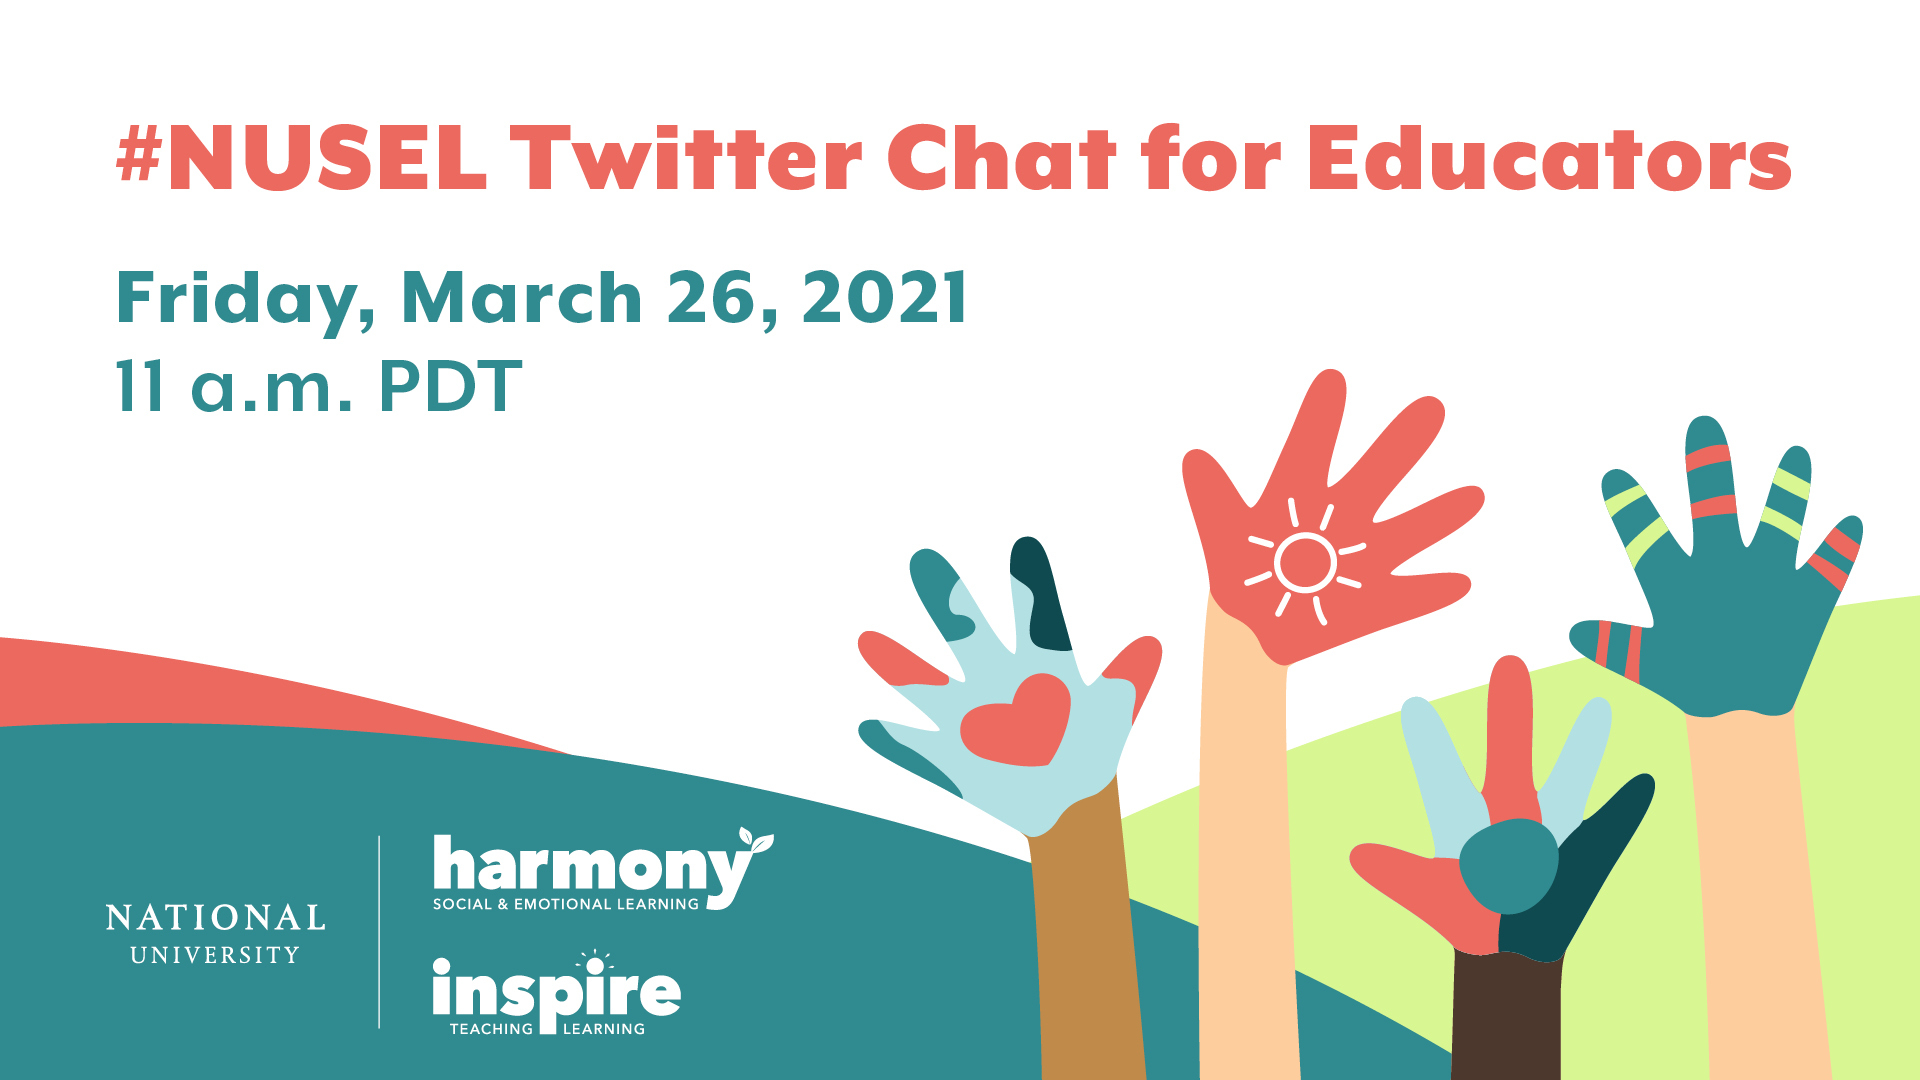 FY21-NU-3472-SOCIAL_SELday Twitter Chat Graphics-01